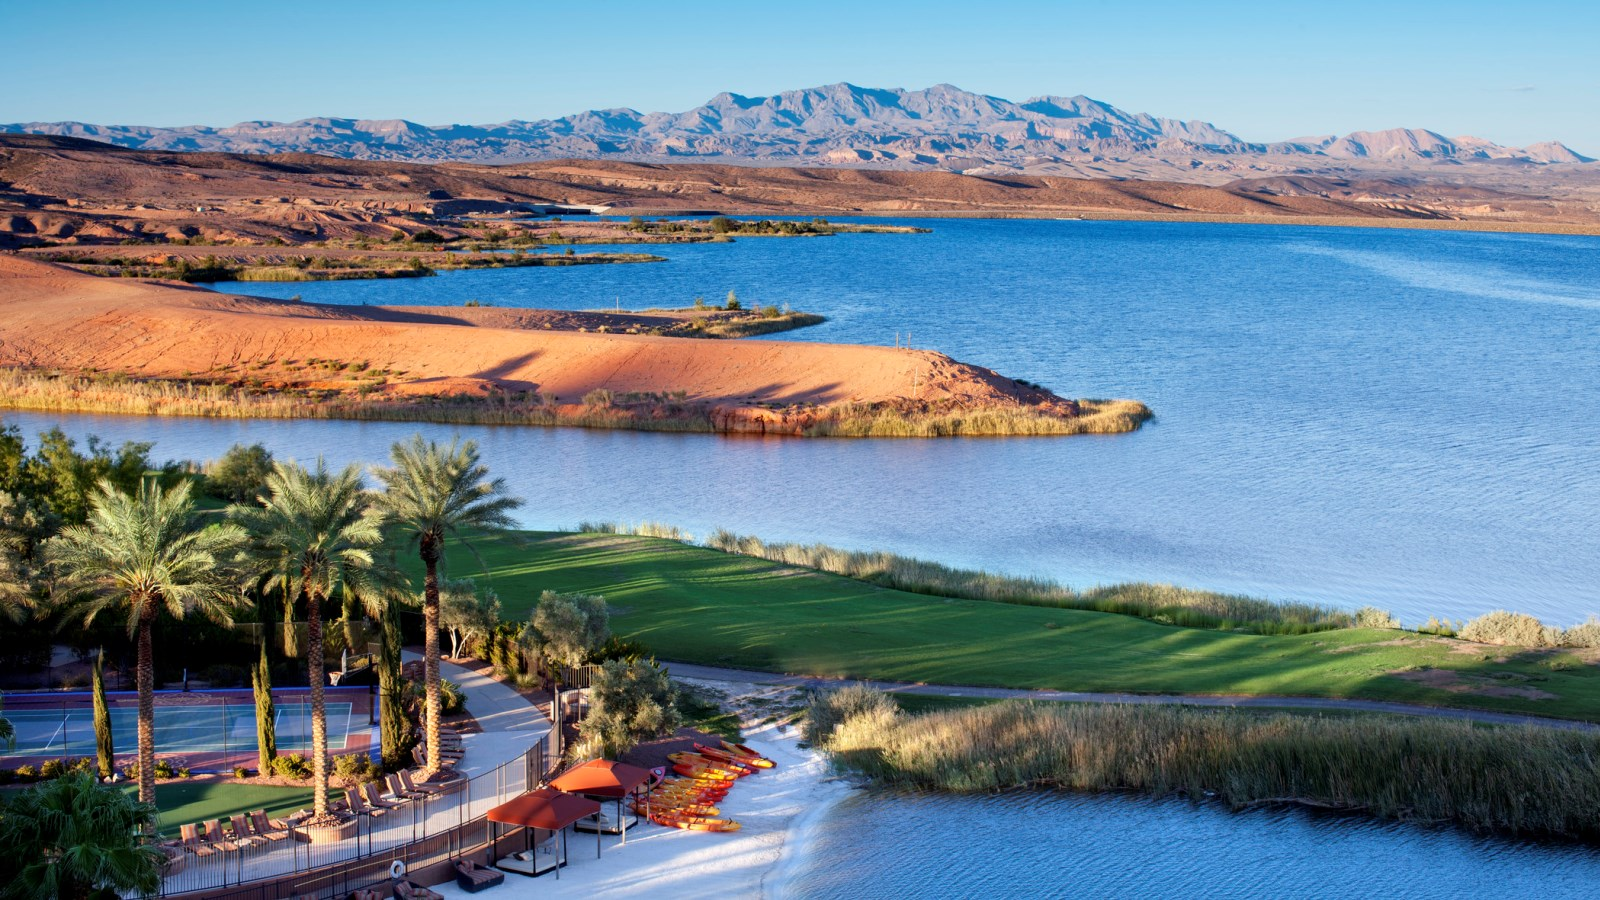 Lake Las Vegas NV Things to Do - Water Recreation